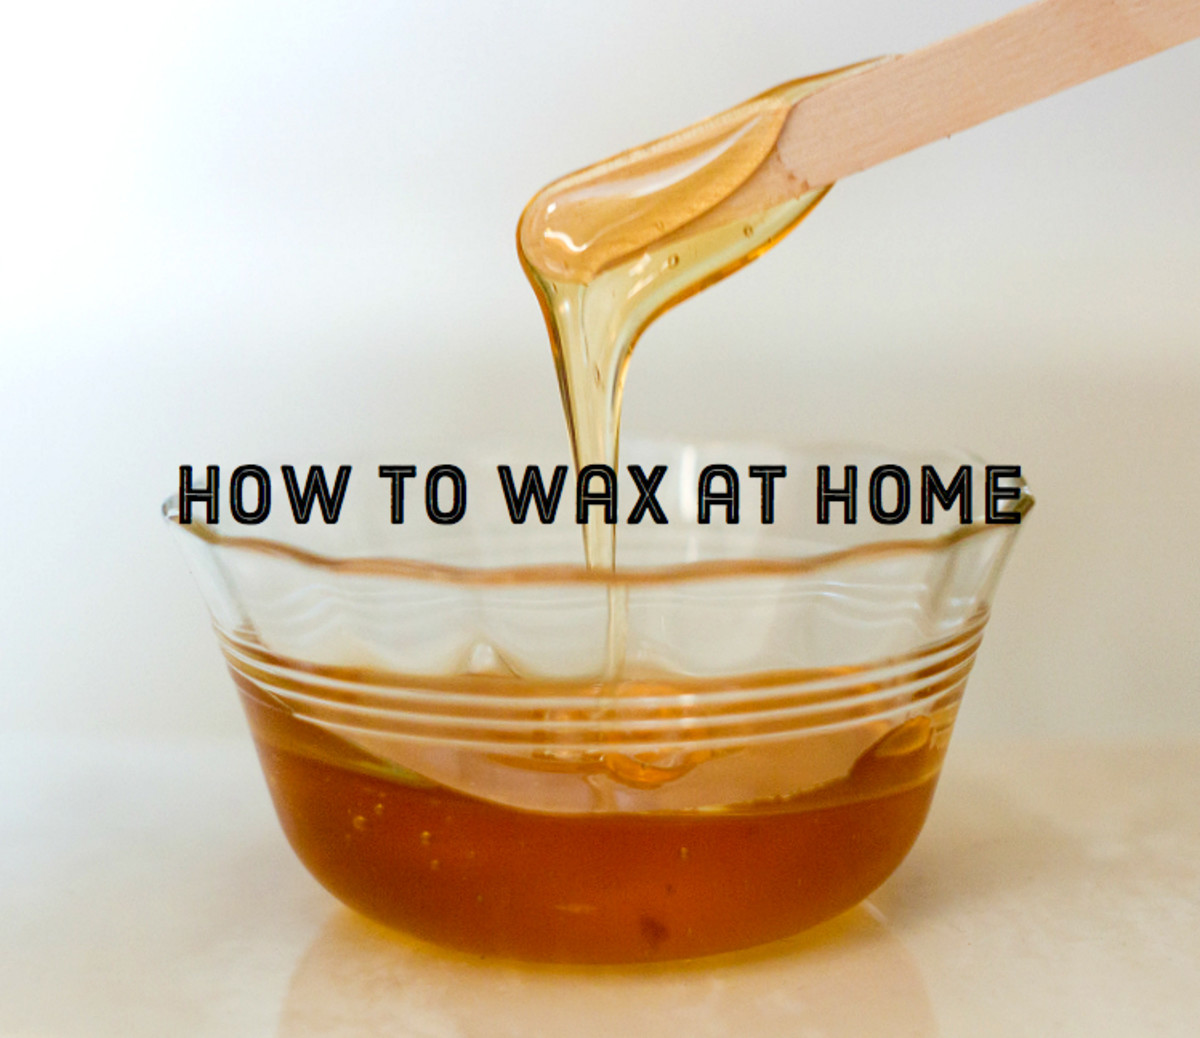 How to Wax at Home